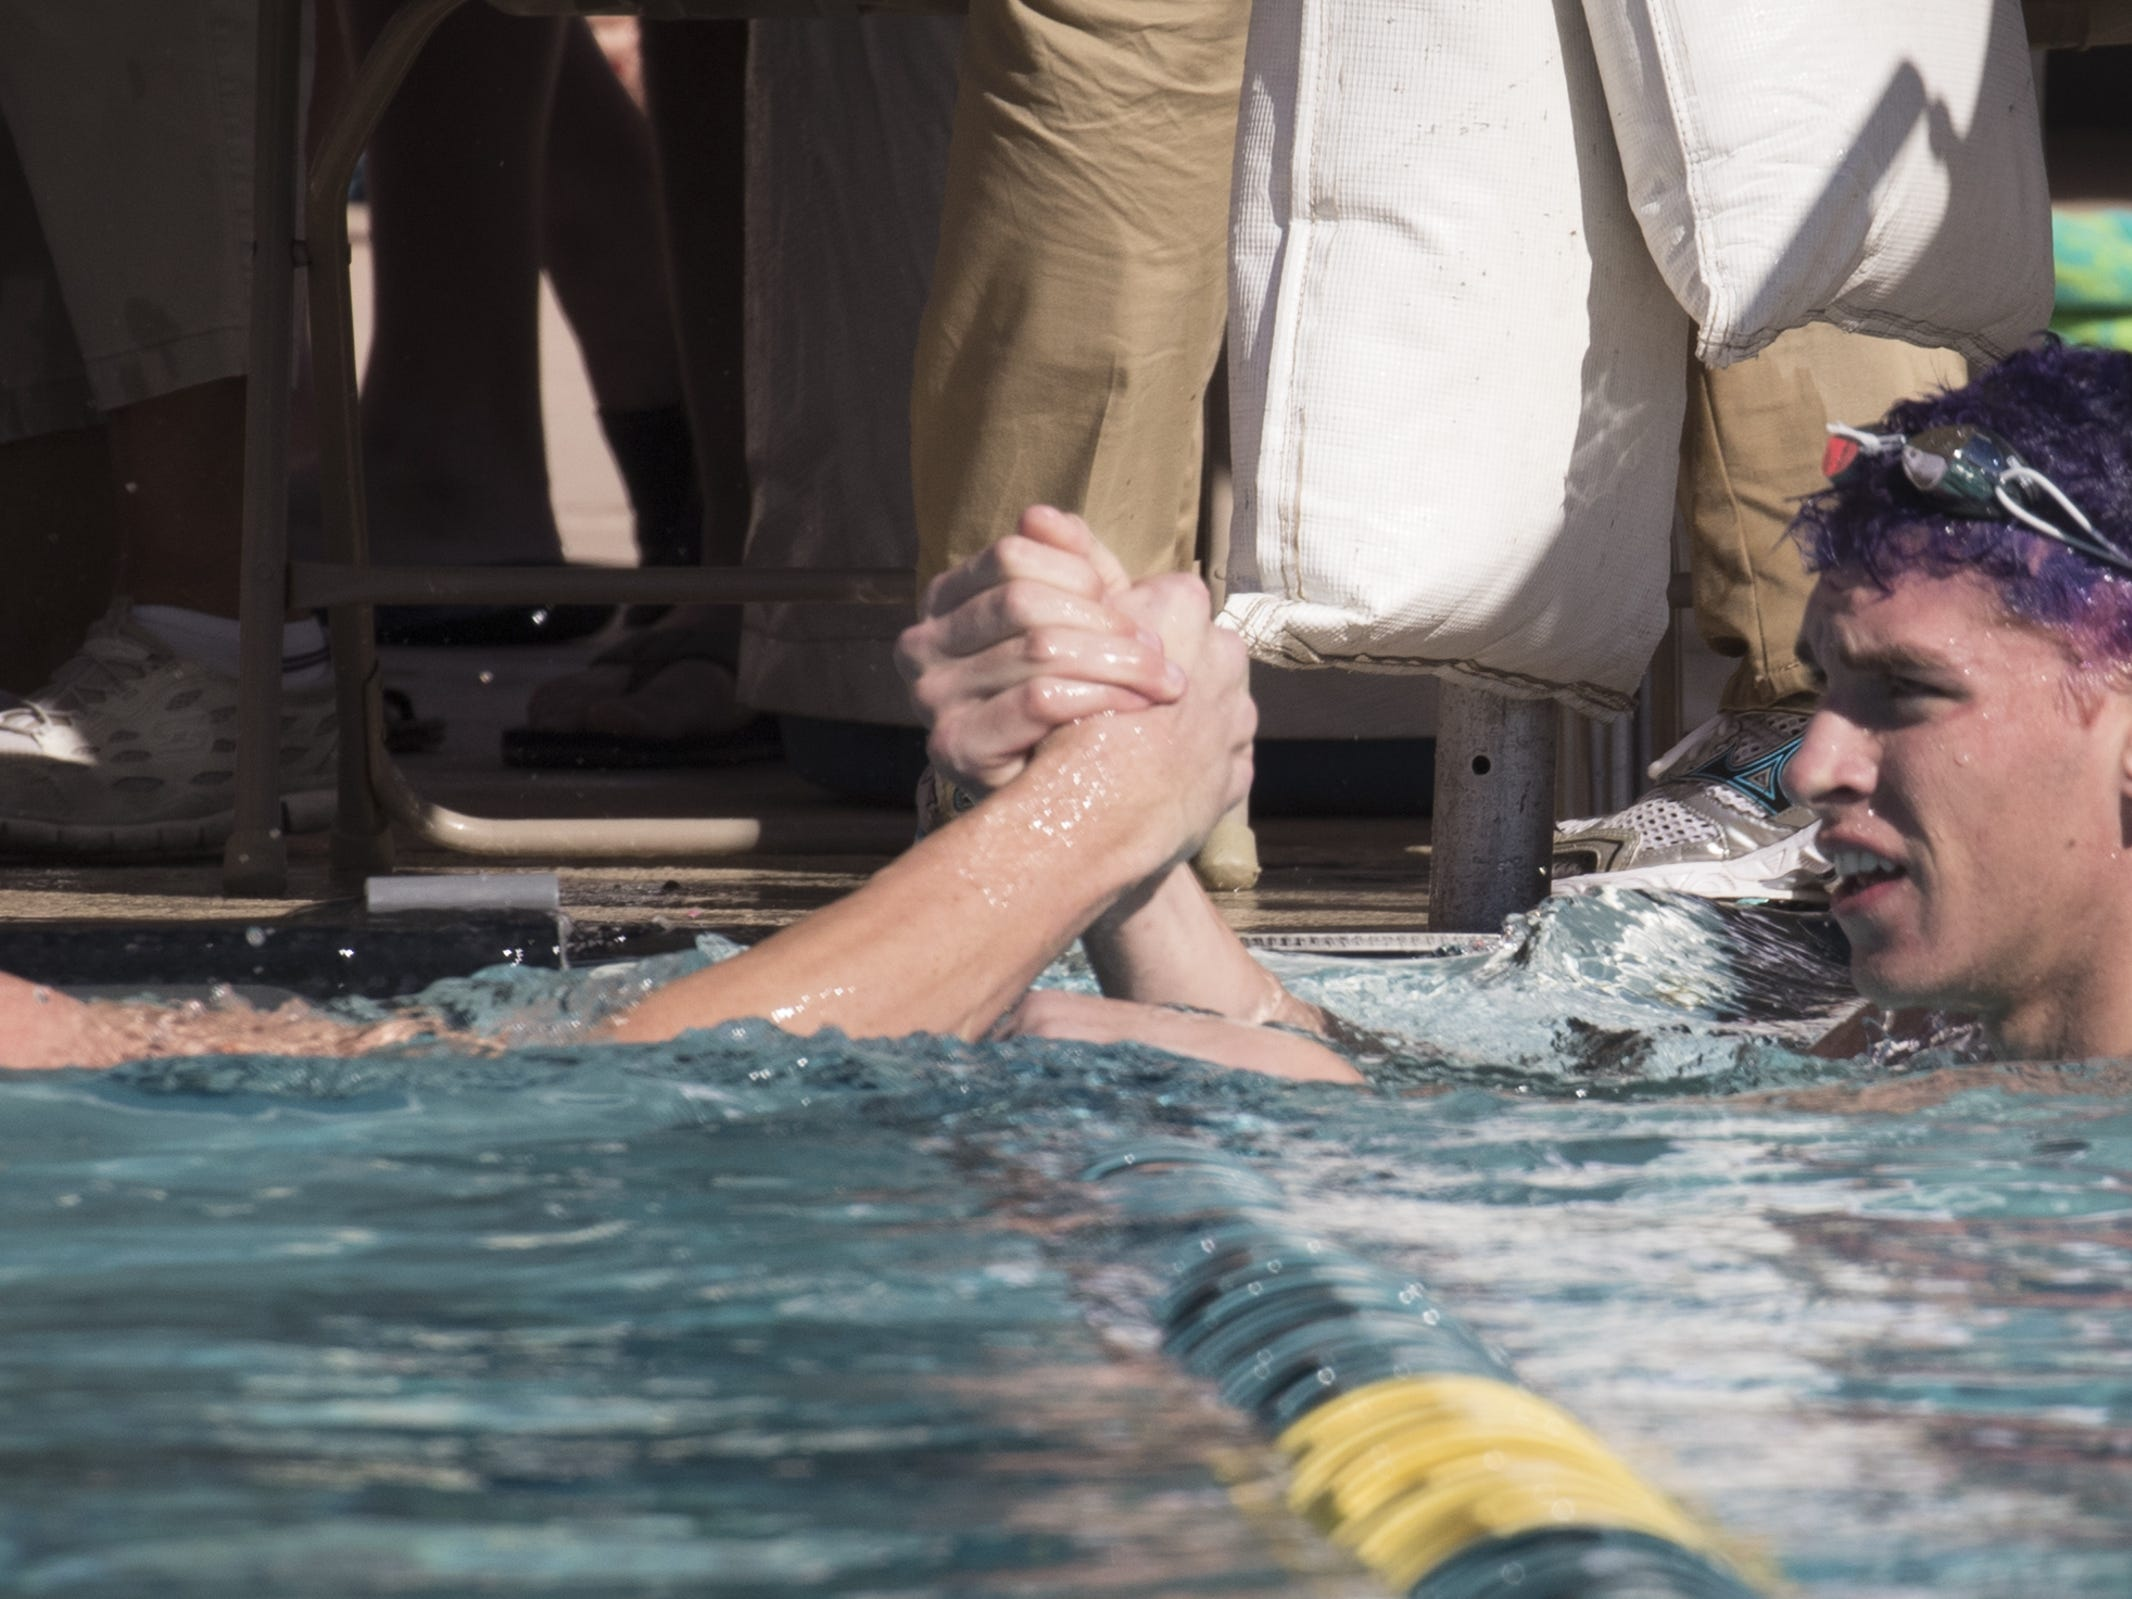 Drake Barberie (Rincon, right) is congratulated by Harris Temple (Prescott) after he won the 100 Butterfly, November 3, 2018, during the AIA Division II state swimming finals at the Skyline Aquatic Center, Mesa.